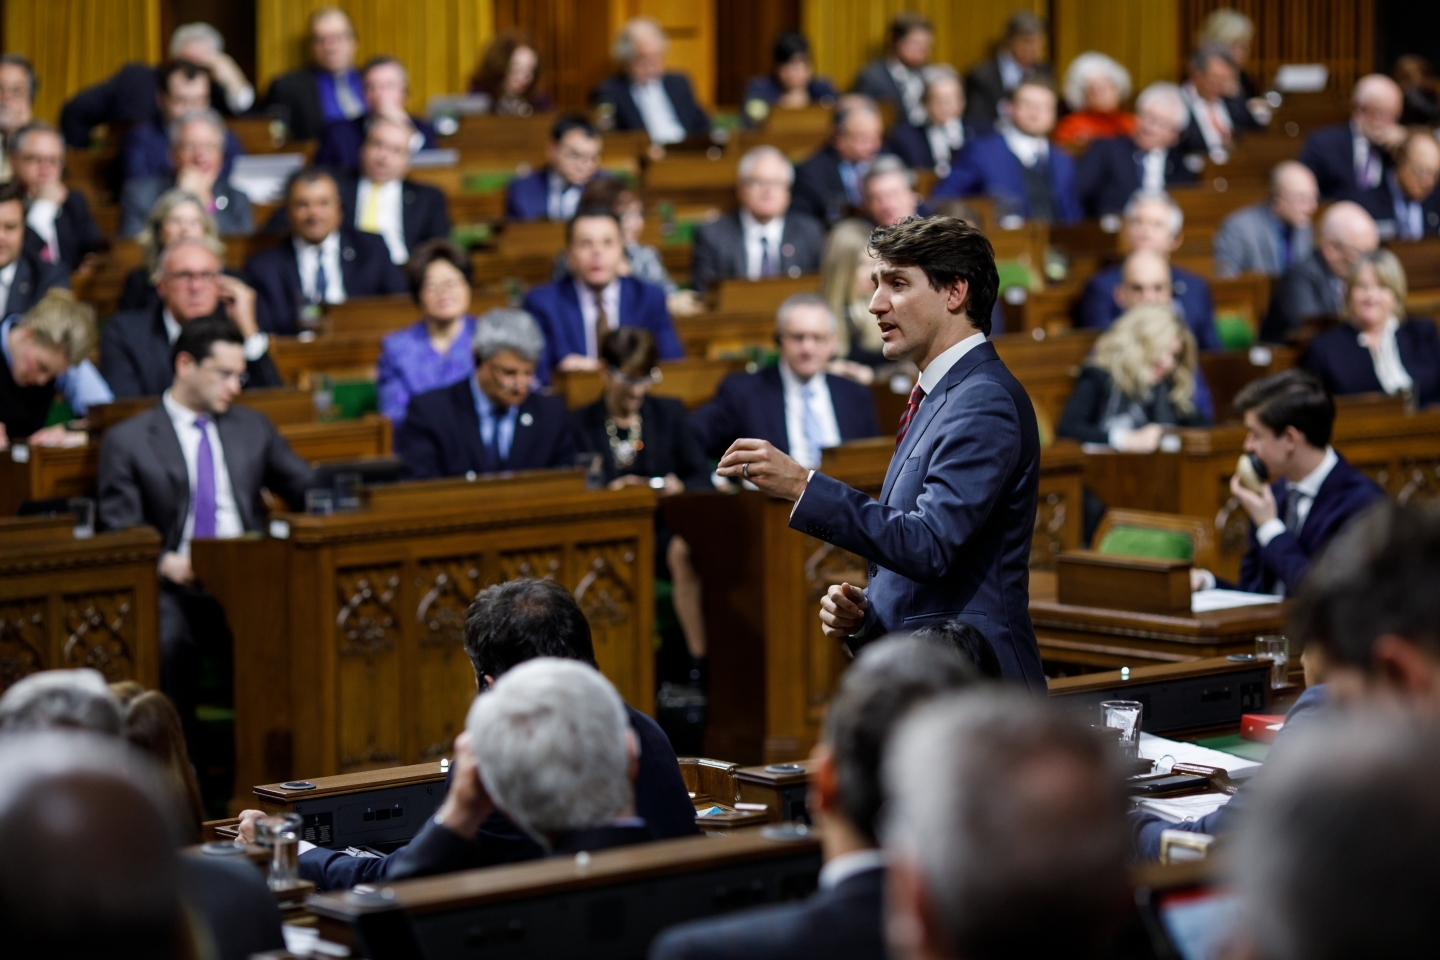 Prime Minister Justin Trudeau during question period in the House of Commons on January 30, 2019. (PMO Photo/Adam Scotti)